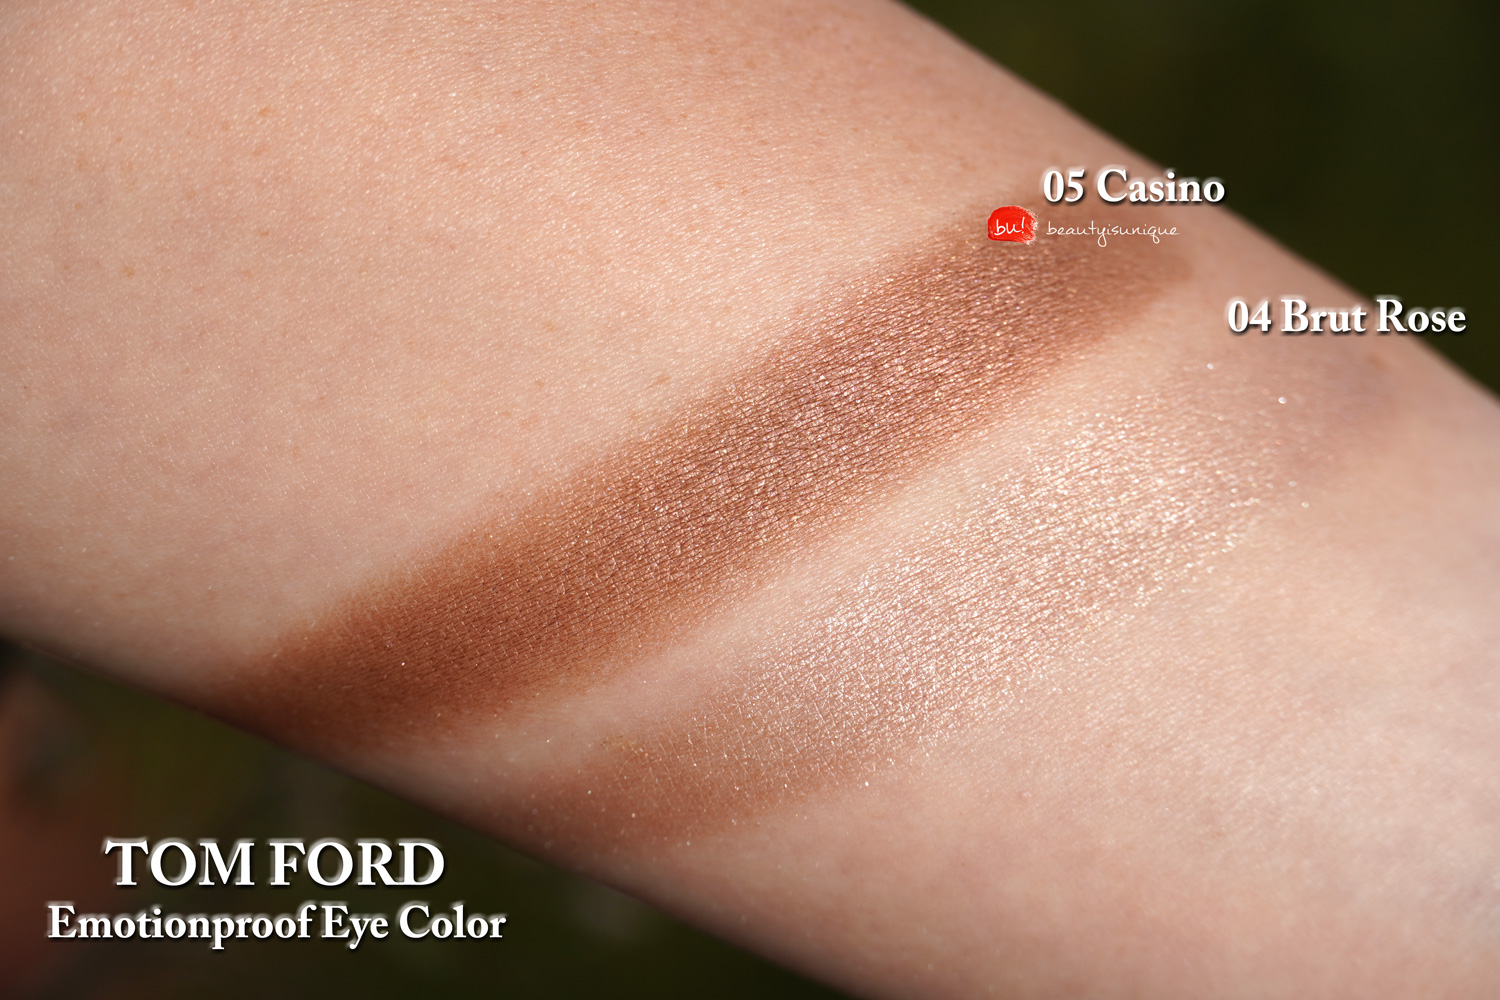 Tom-ford-emotionproof-eye-color-casino-brut-rose-swatches